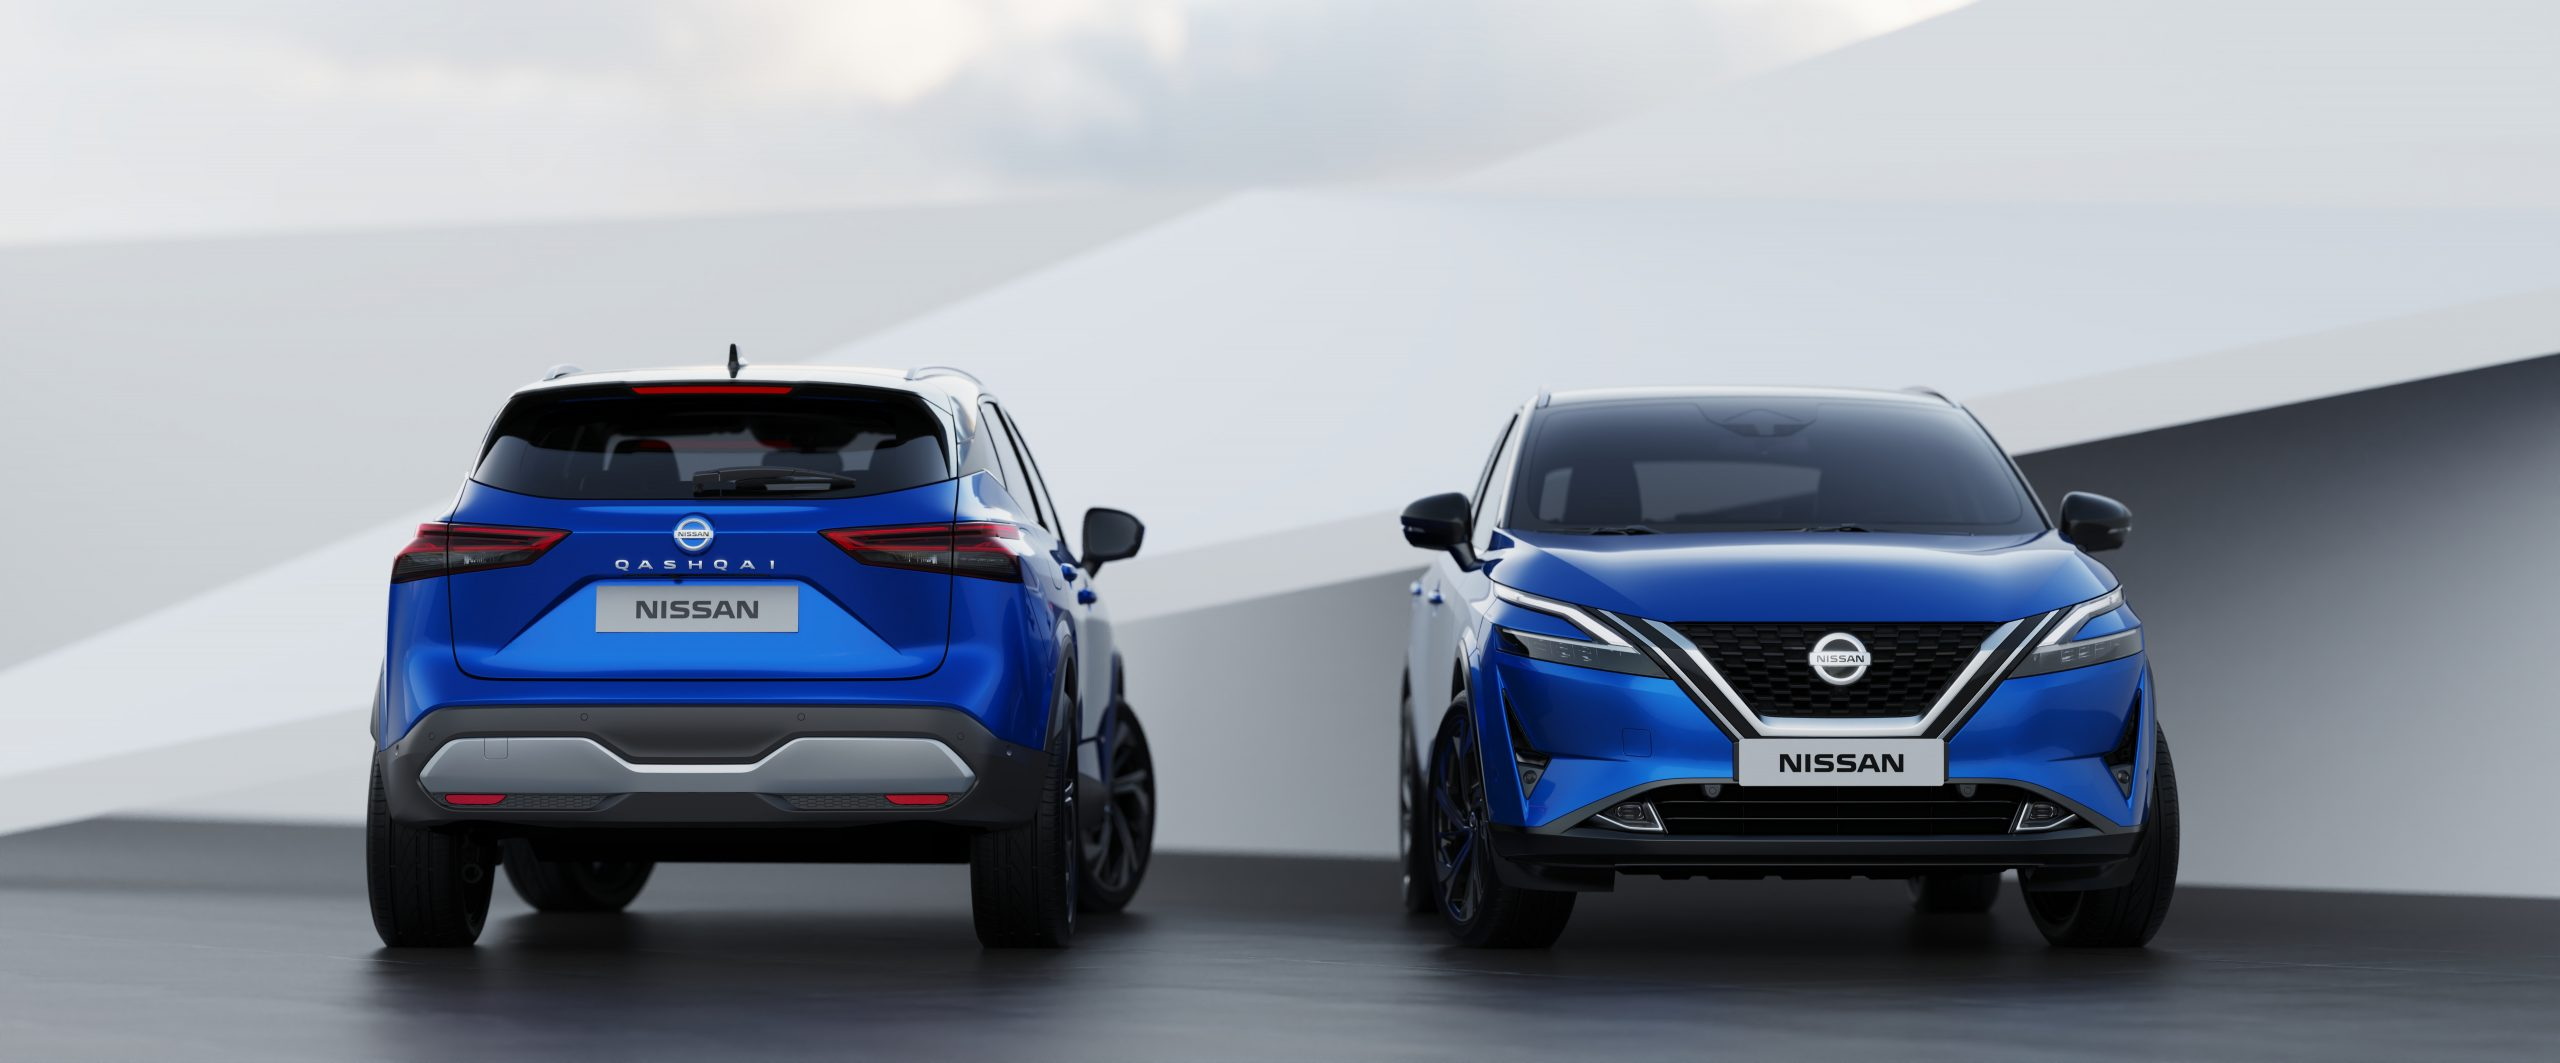 All-new Limited Edition Nissan Qashqai